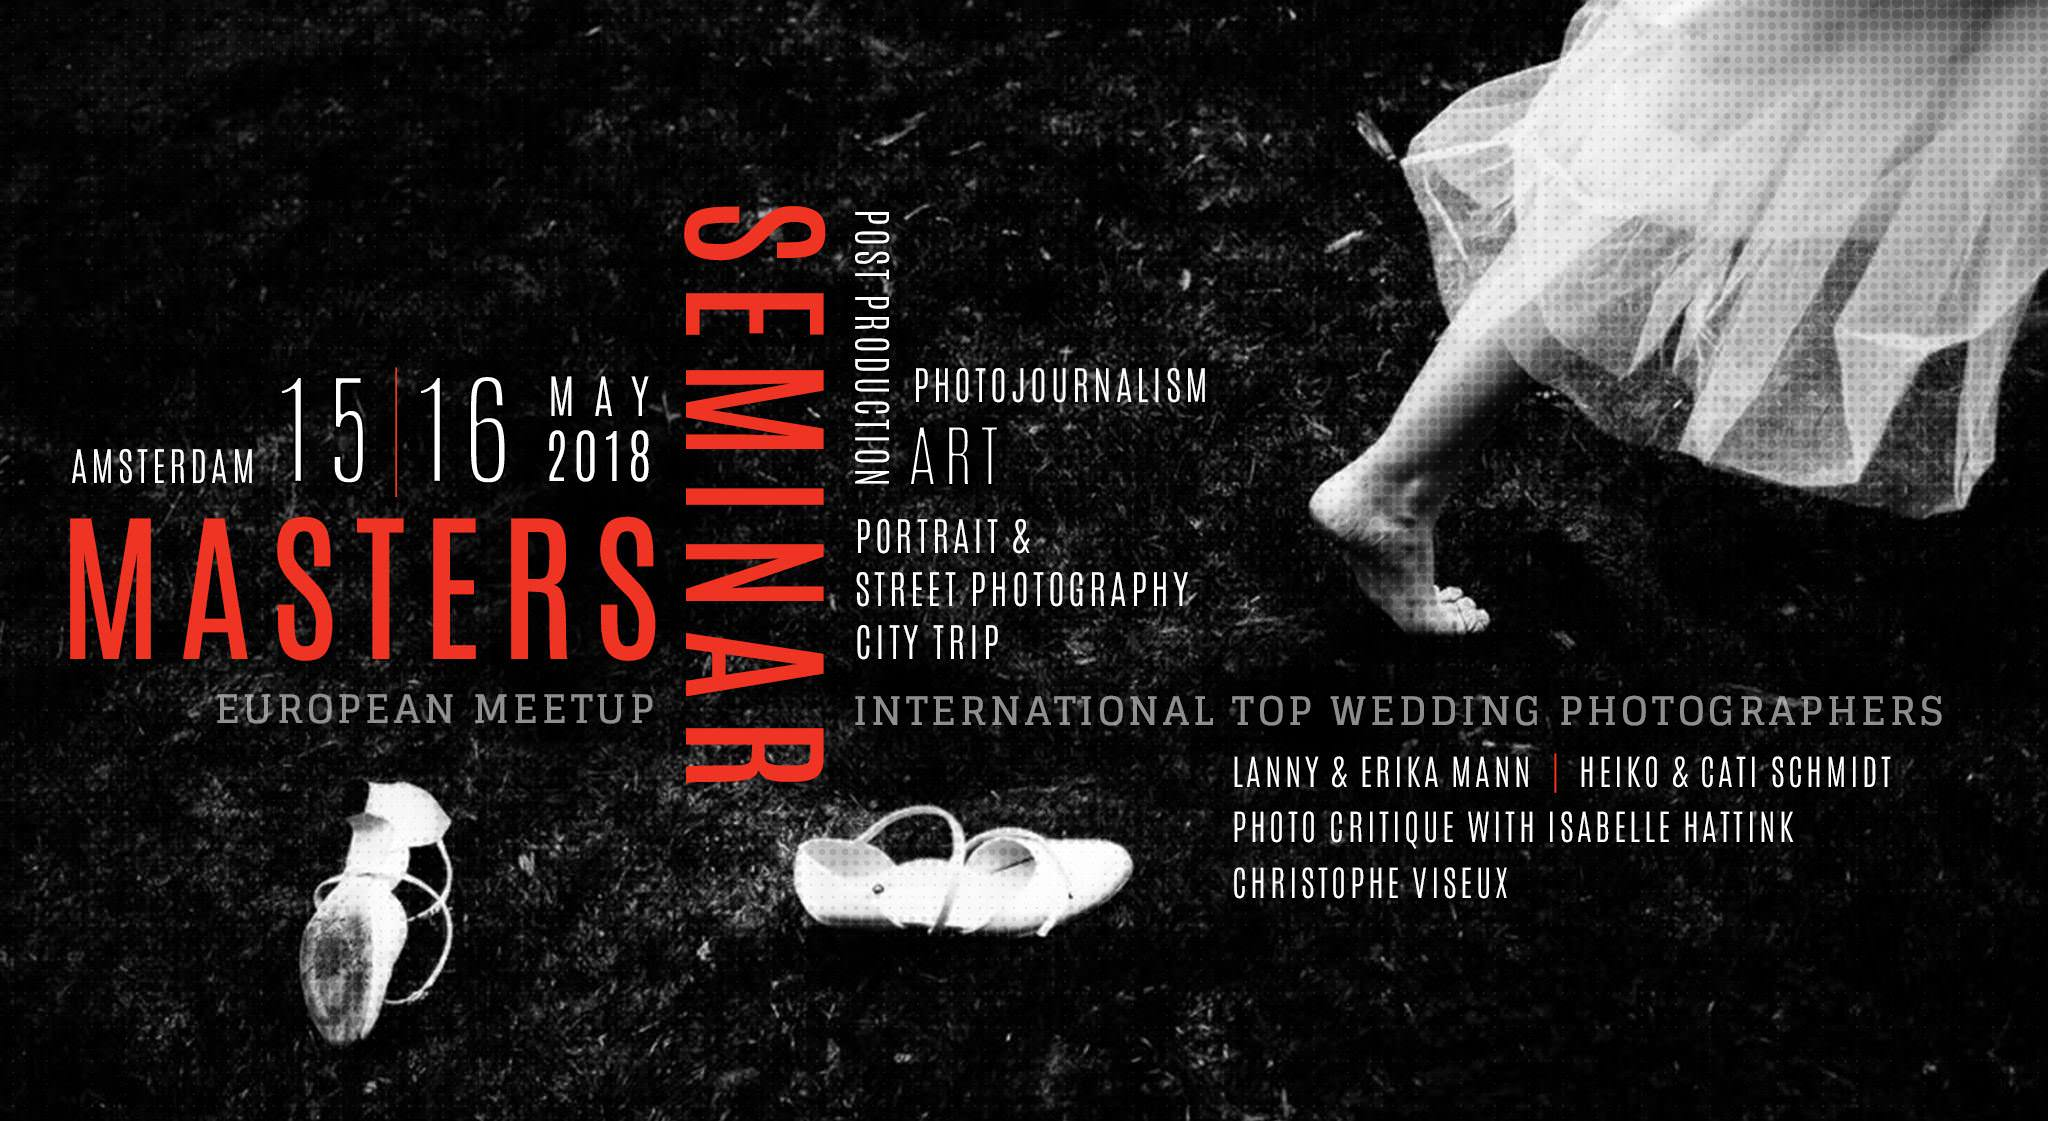 poster for the wedding conference Masters Seminar